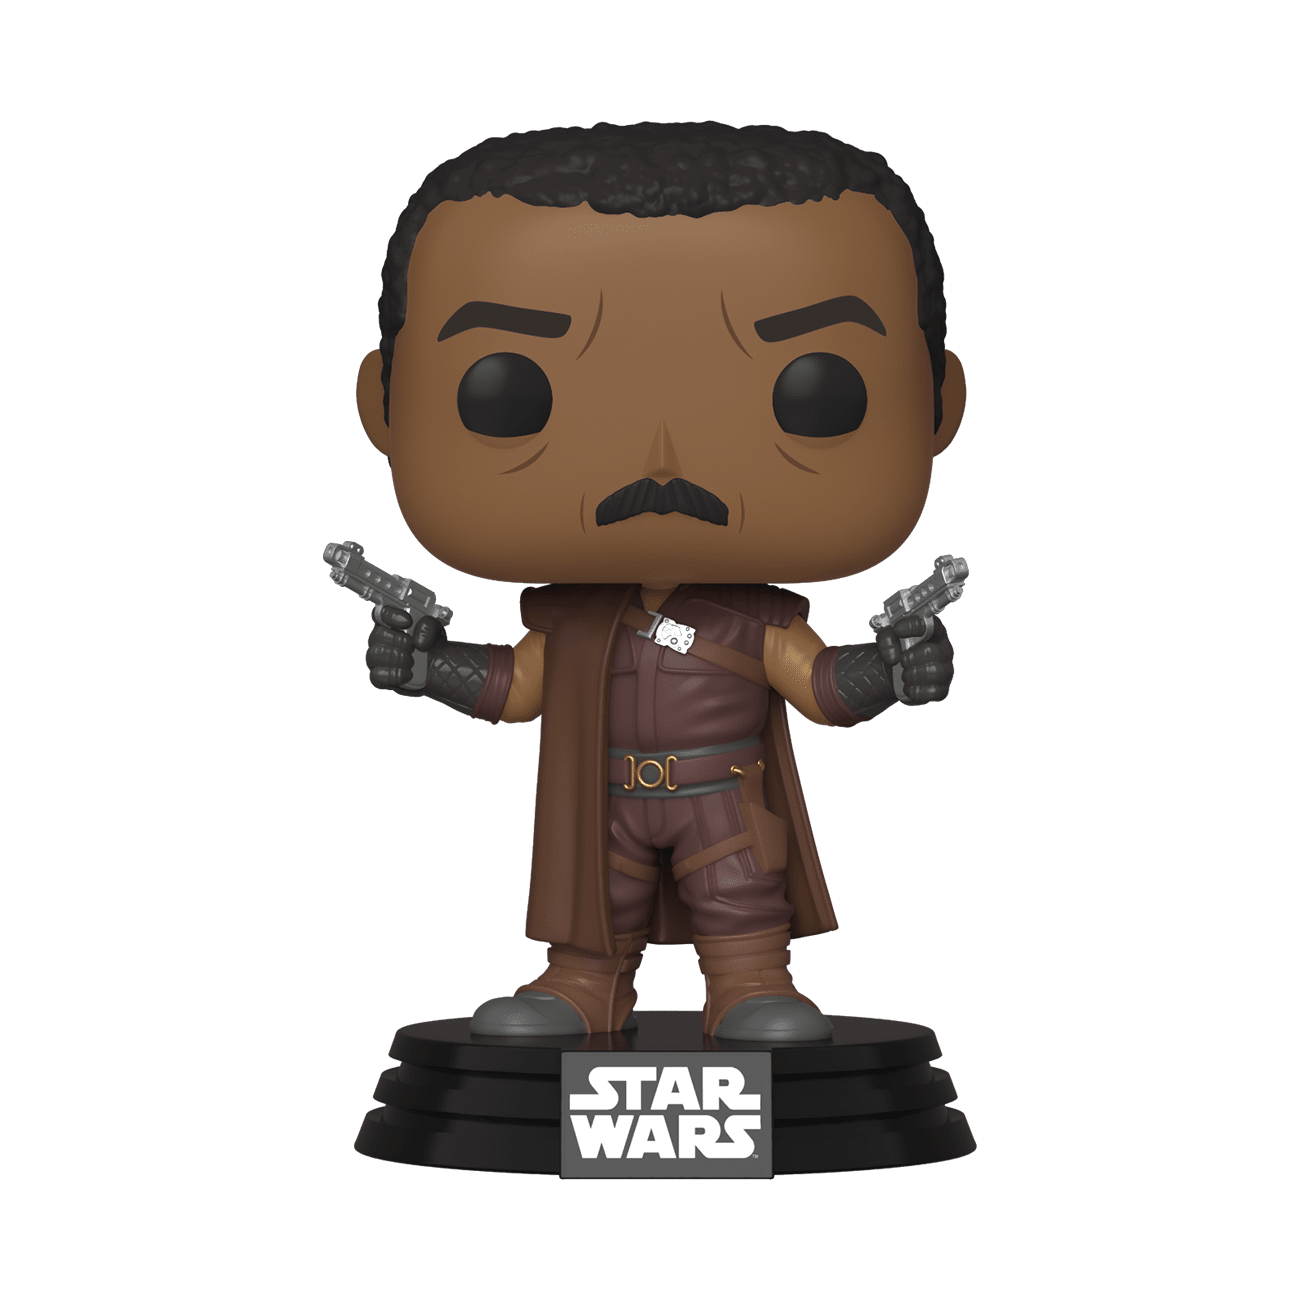 The Mandalorian Jawa Egg : forget the baby yoda it 39 s the werner herzog funko pop i ~ Pogadajmy.info Styles, Décorations et Voitures